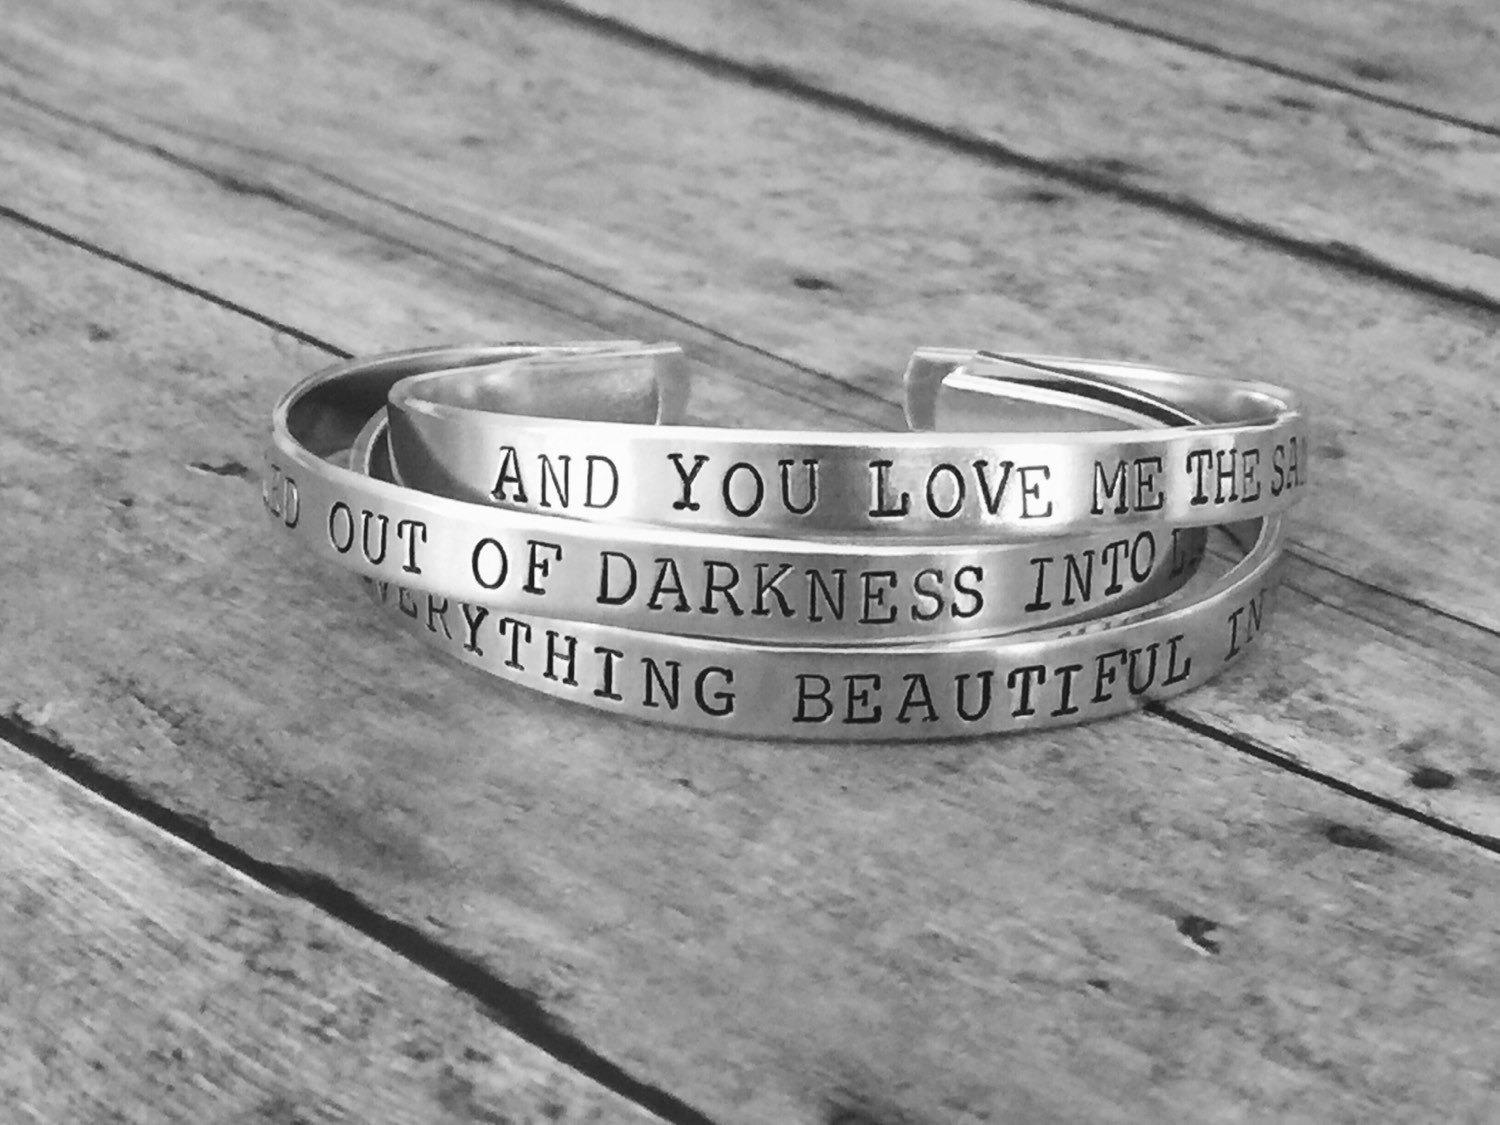 jewelry mantra silver new pcs babies for engraved stamped stainless bracelet bangle steel words cuff product arrival bangles sale from hot hand open